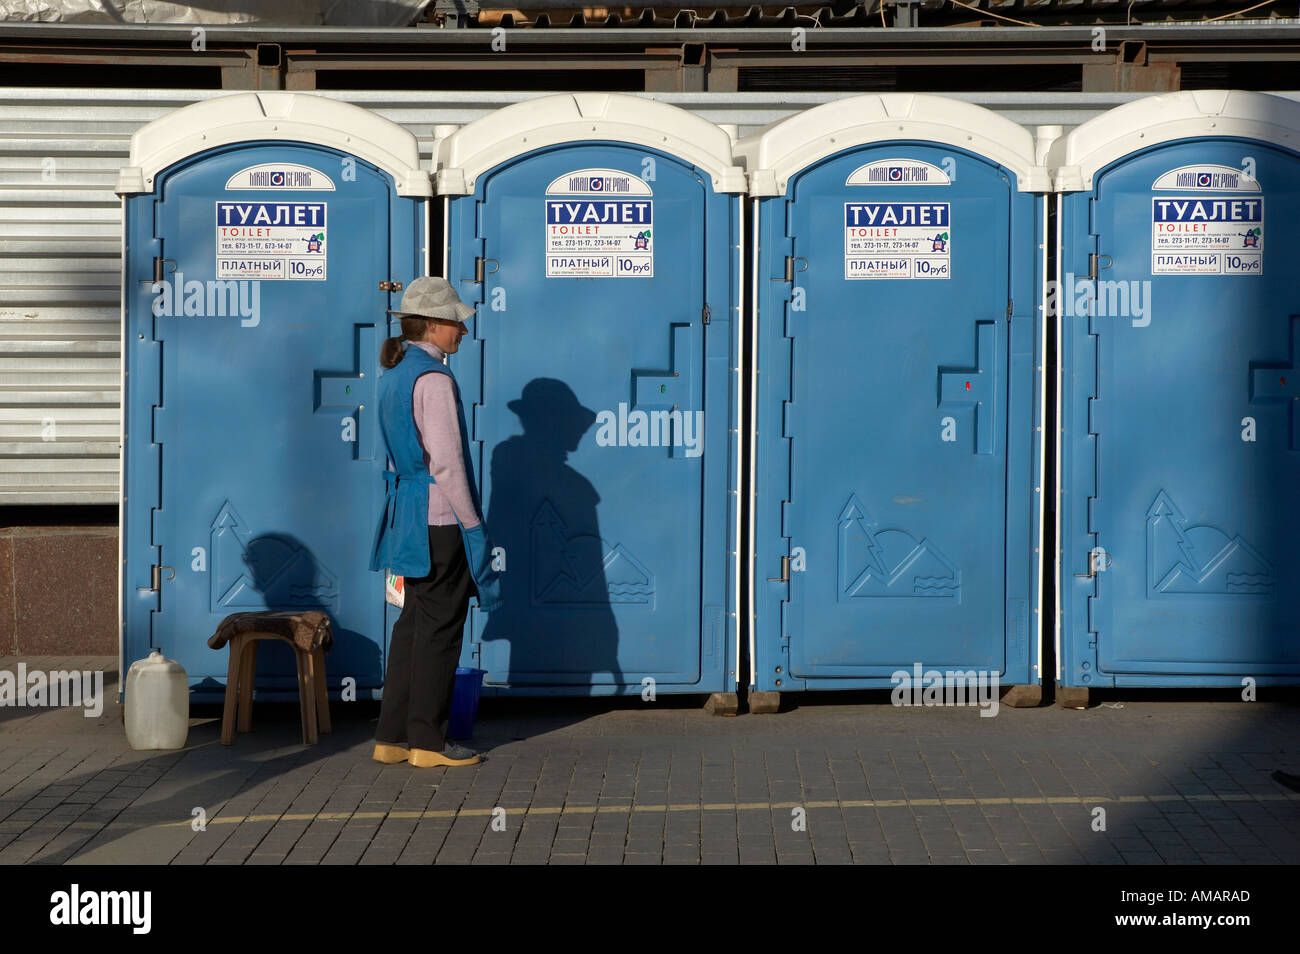 PUBLIC TOILETS MANEZHNAYA SQUARE MOSCOW RUSSIA Stock Photo: 4964268 ...